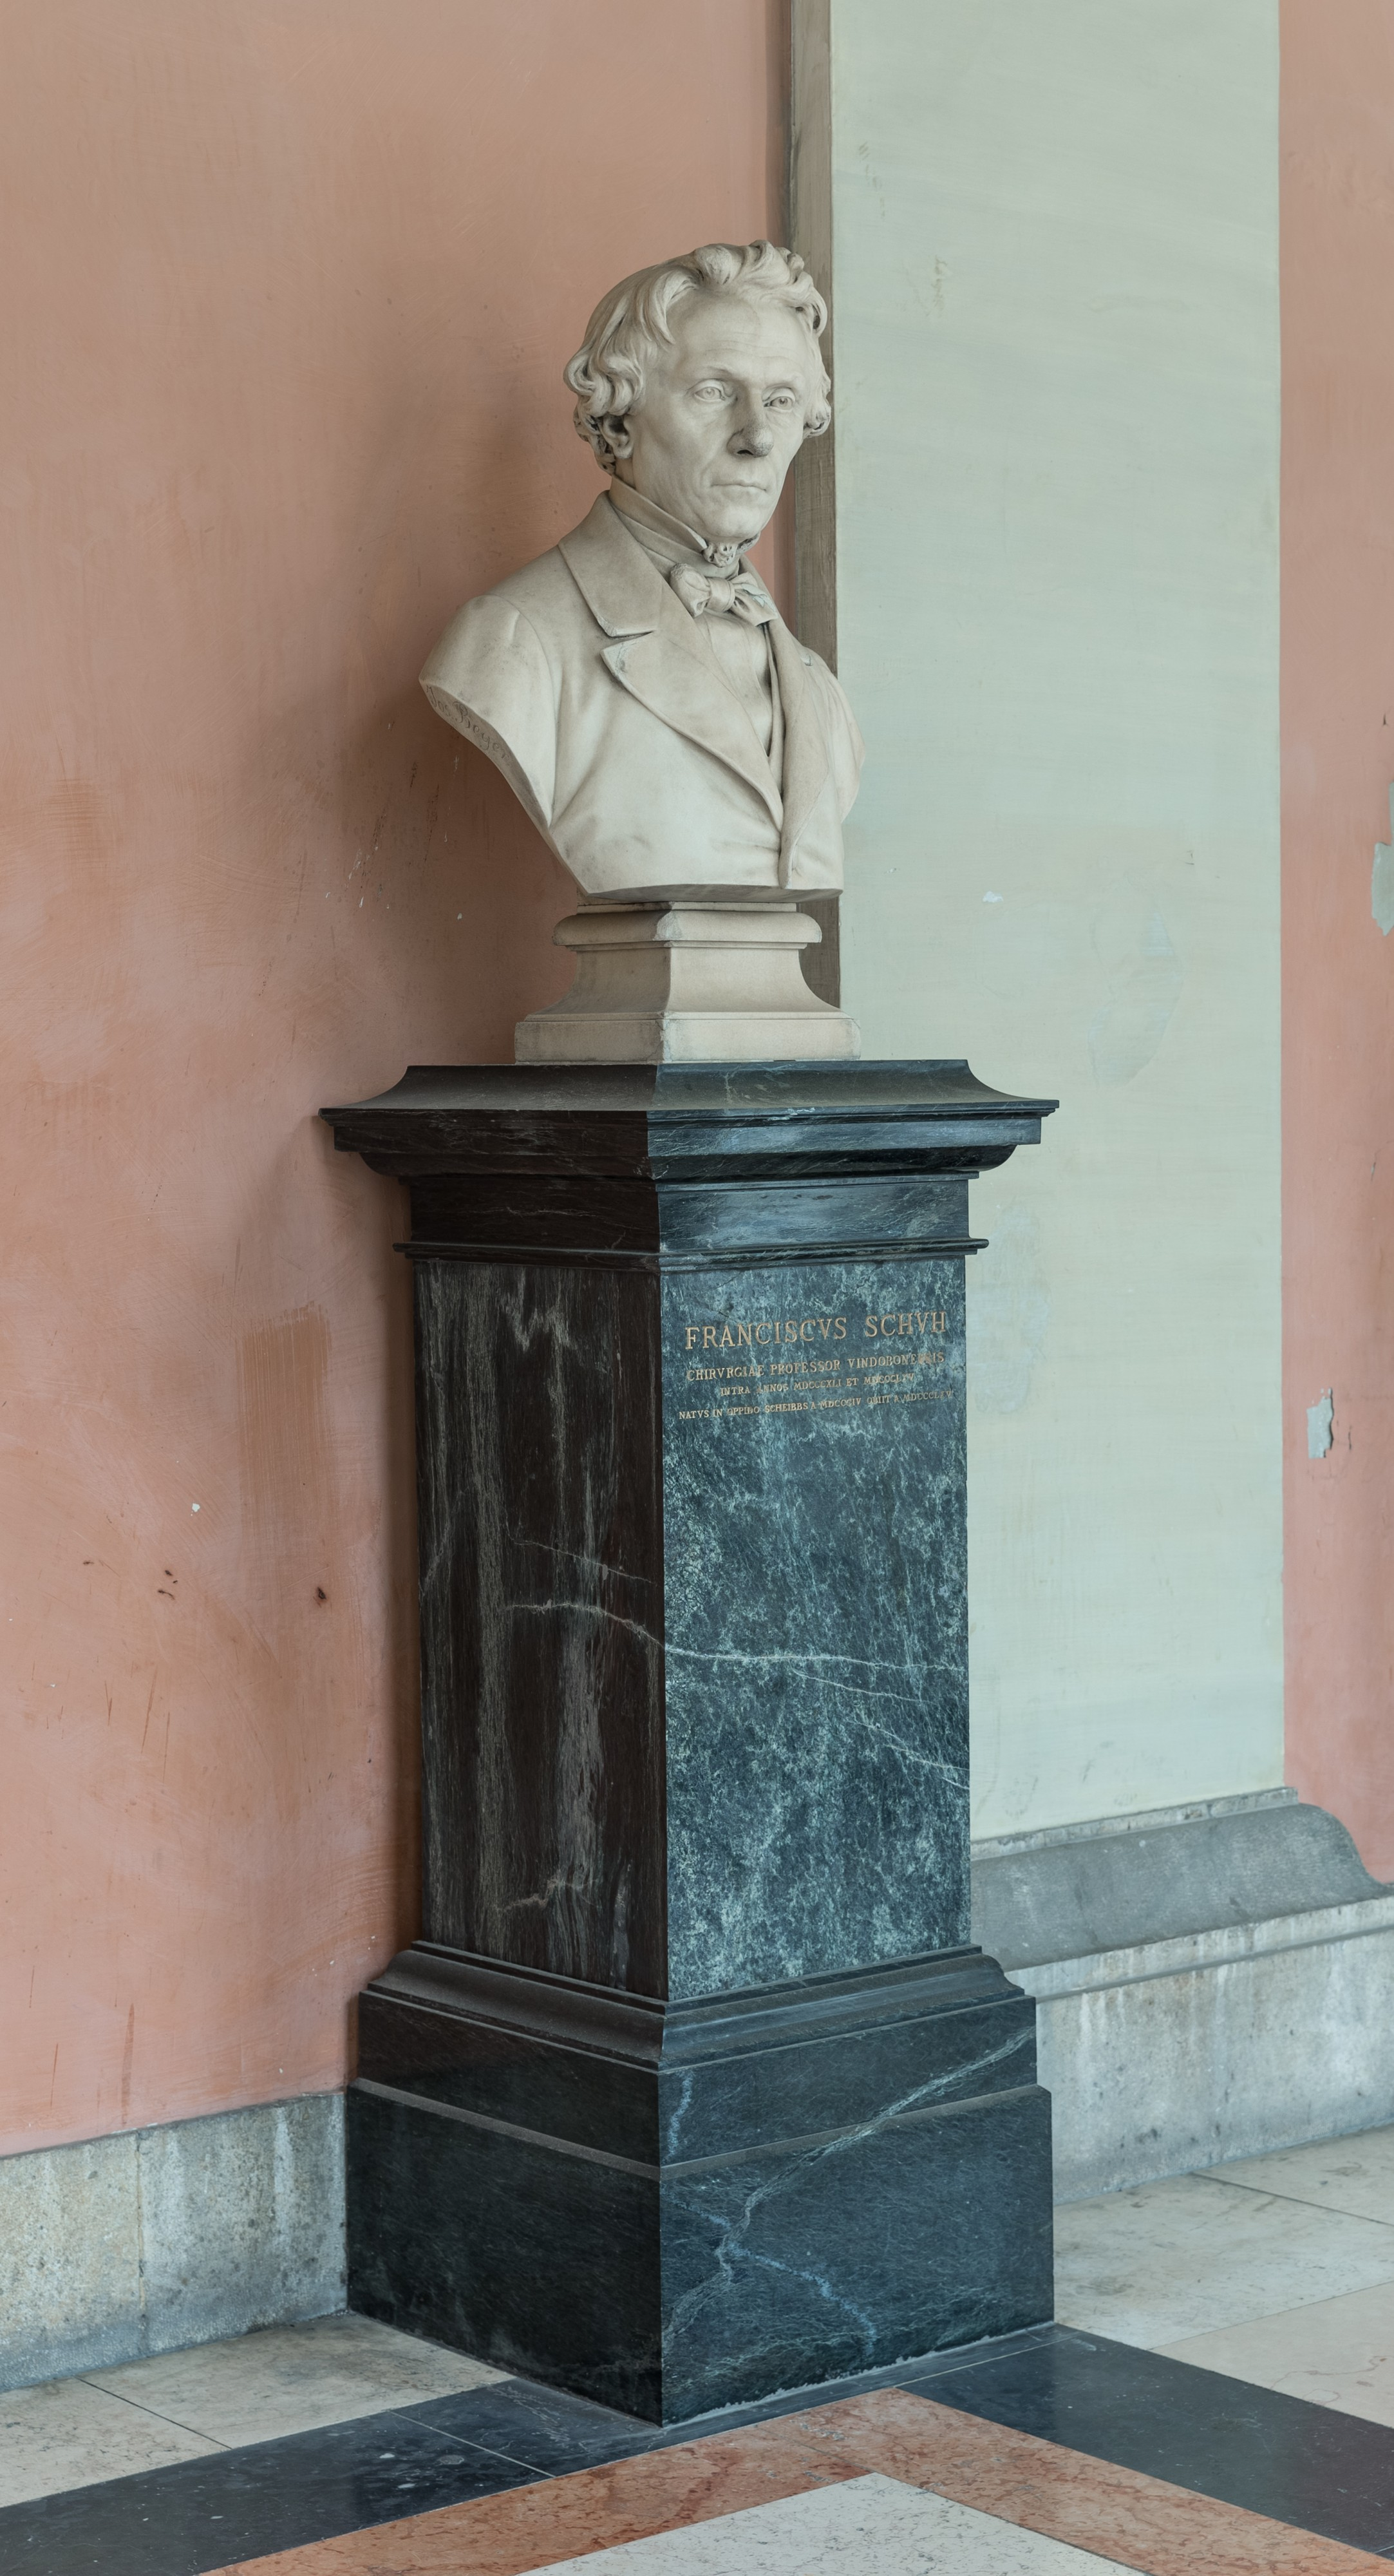 Franz Schuh (1865-1935), Nr. 115, bust (marble) in the Arkadenhof of the University of Vienna 2592